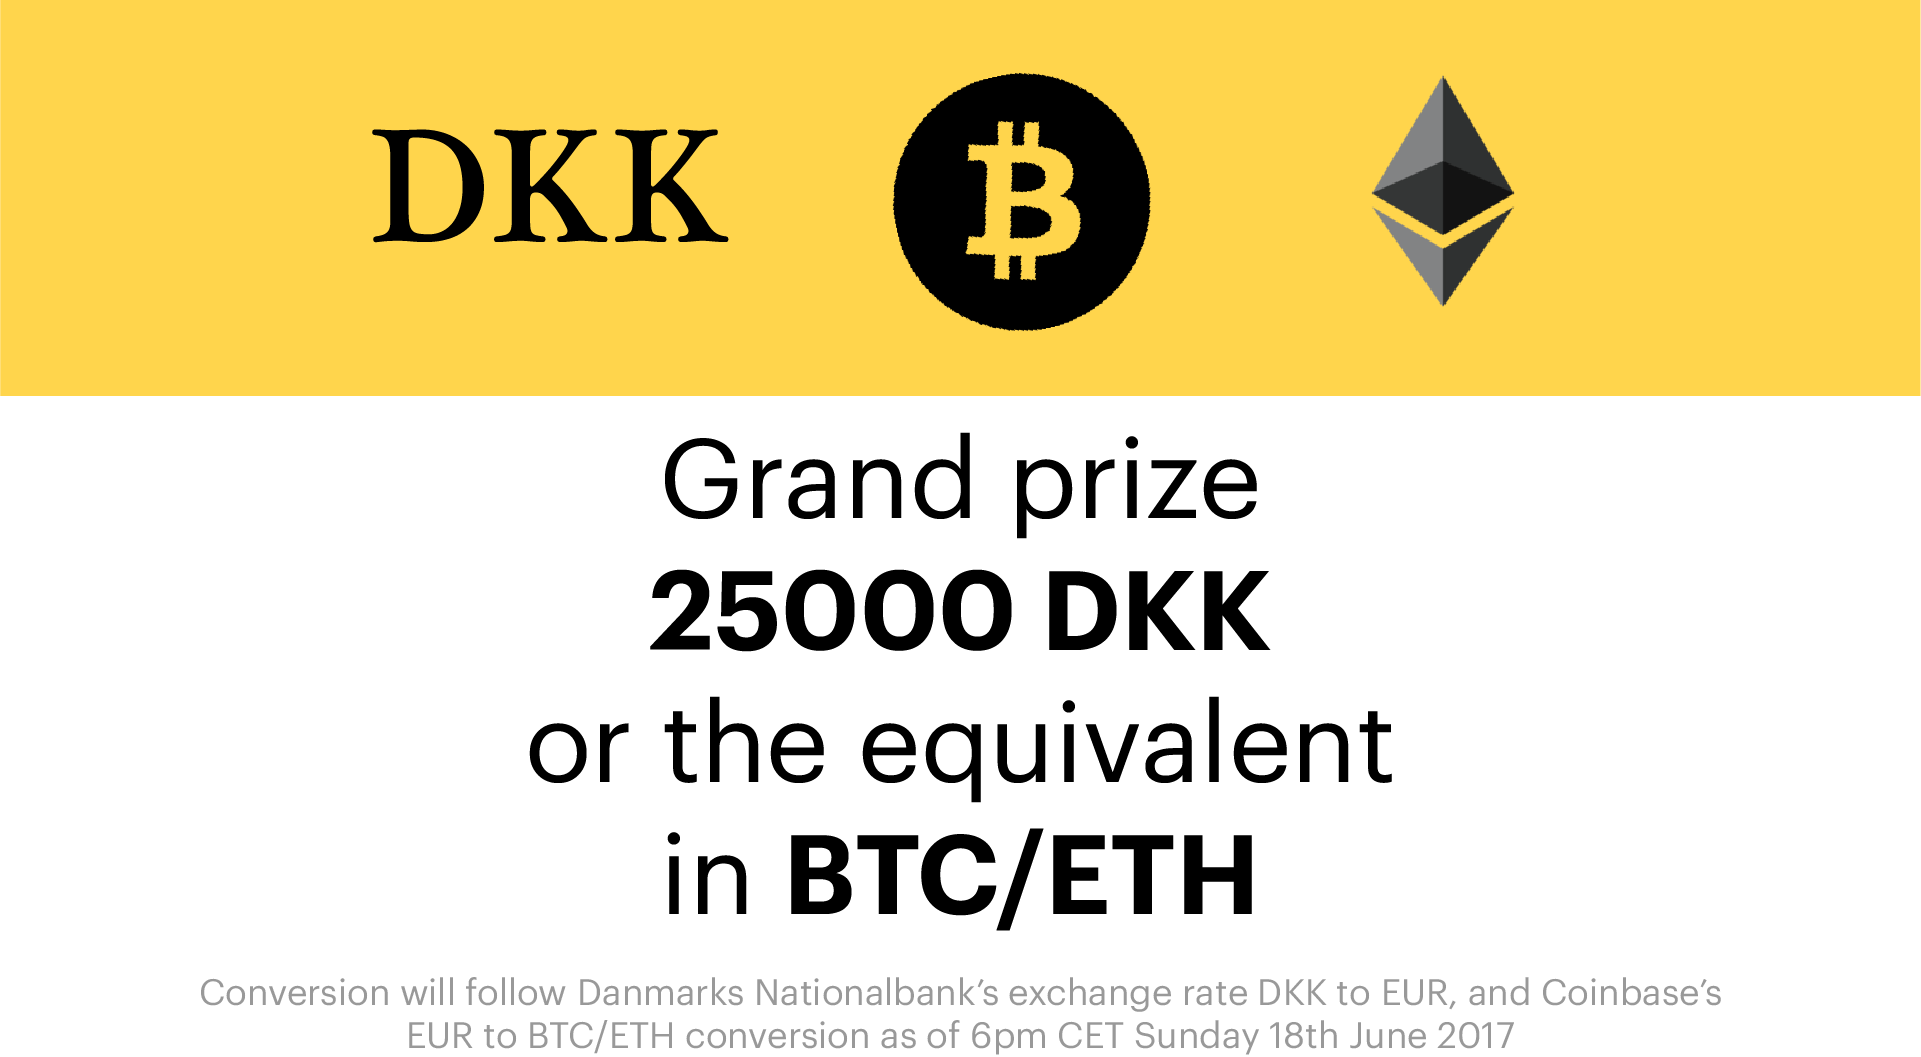 Choose between DKK, BTC or ETH